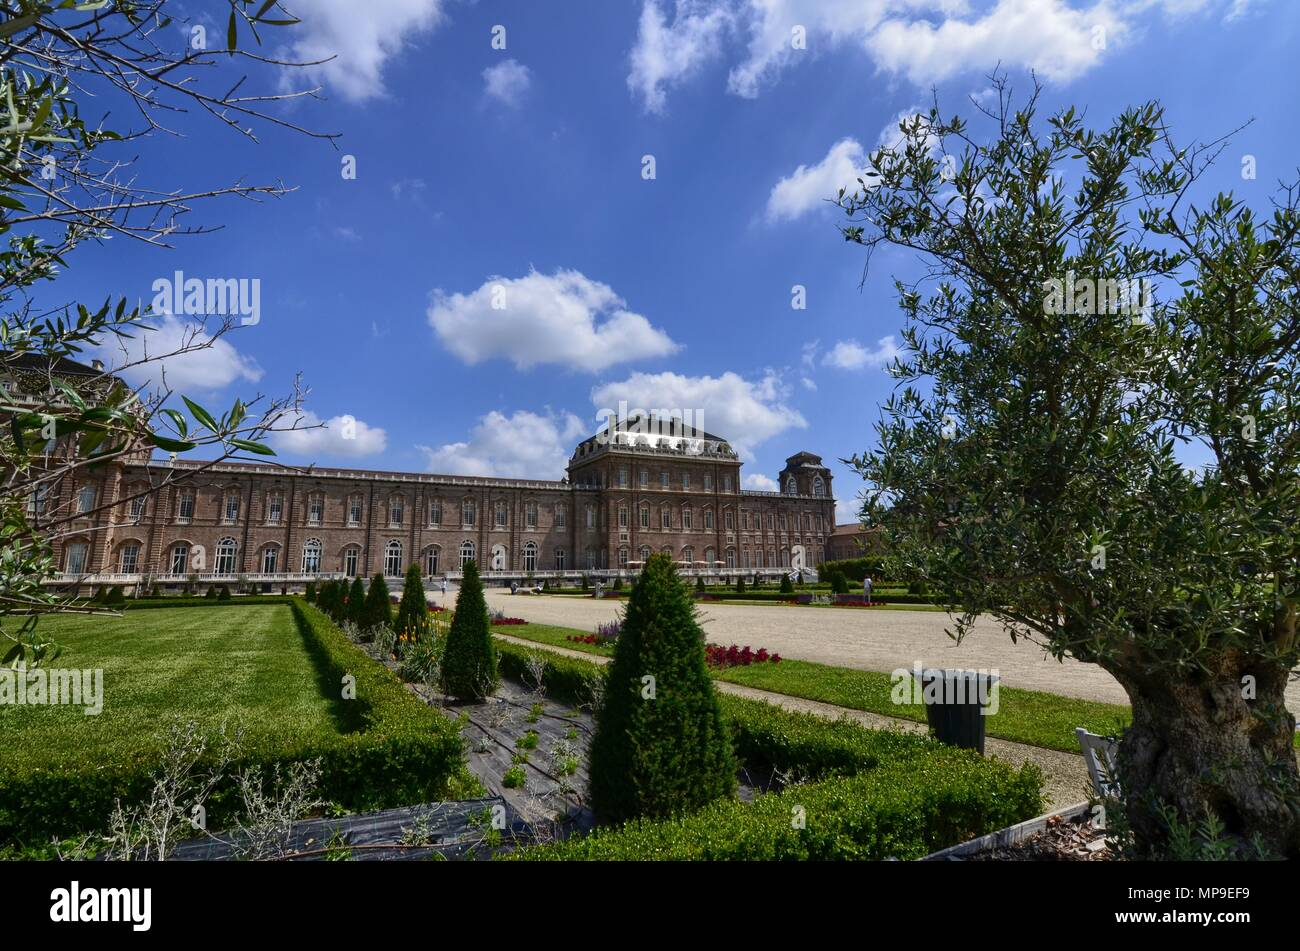 Venaria reale, Piedmont region, Italy. June 2017. Tourists explore the magnificent park of the palace. Tree-lined avenues, lawn, olive trees, flowers - Stock Image